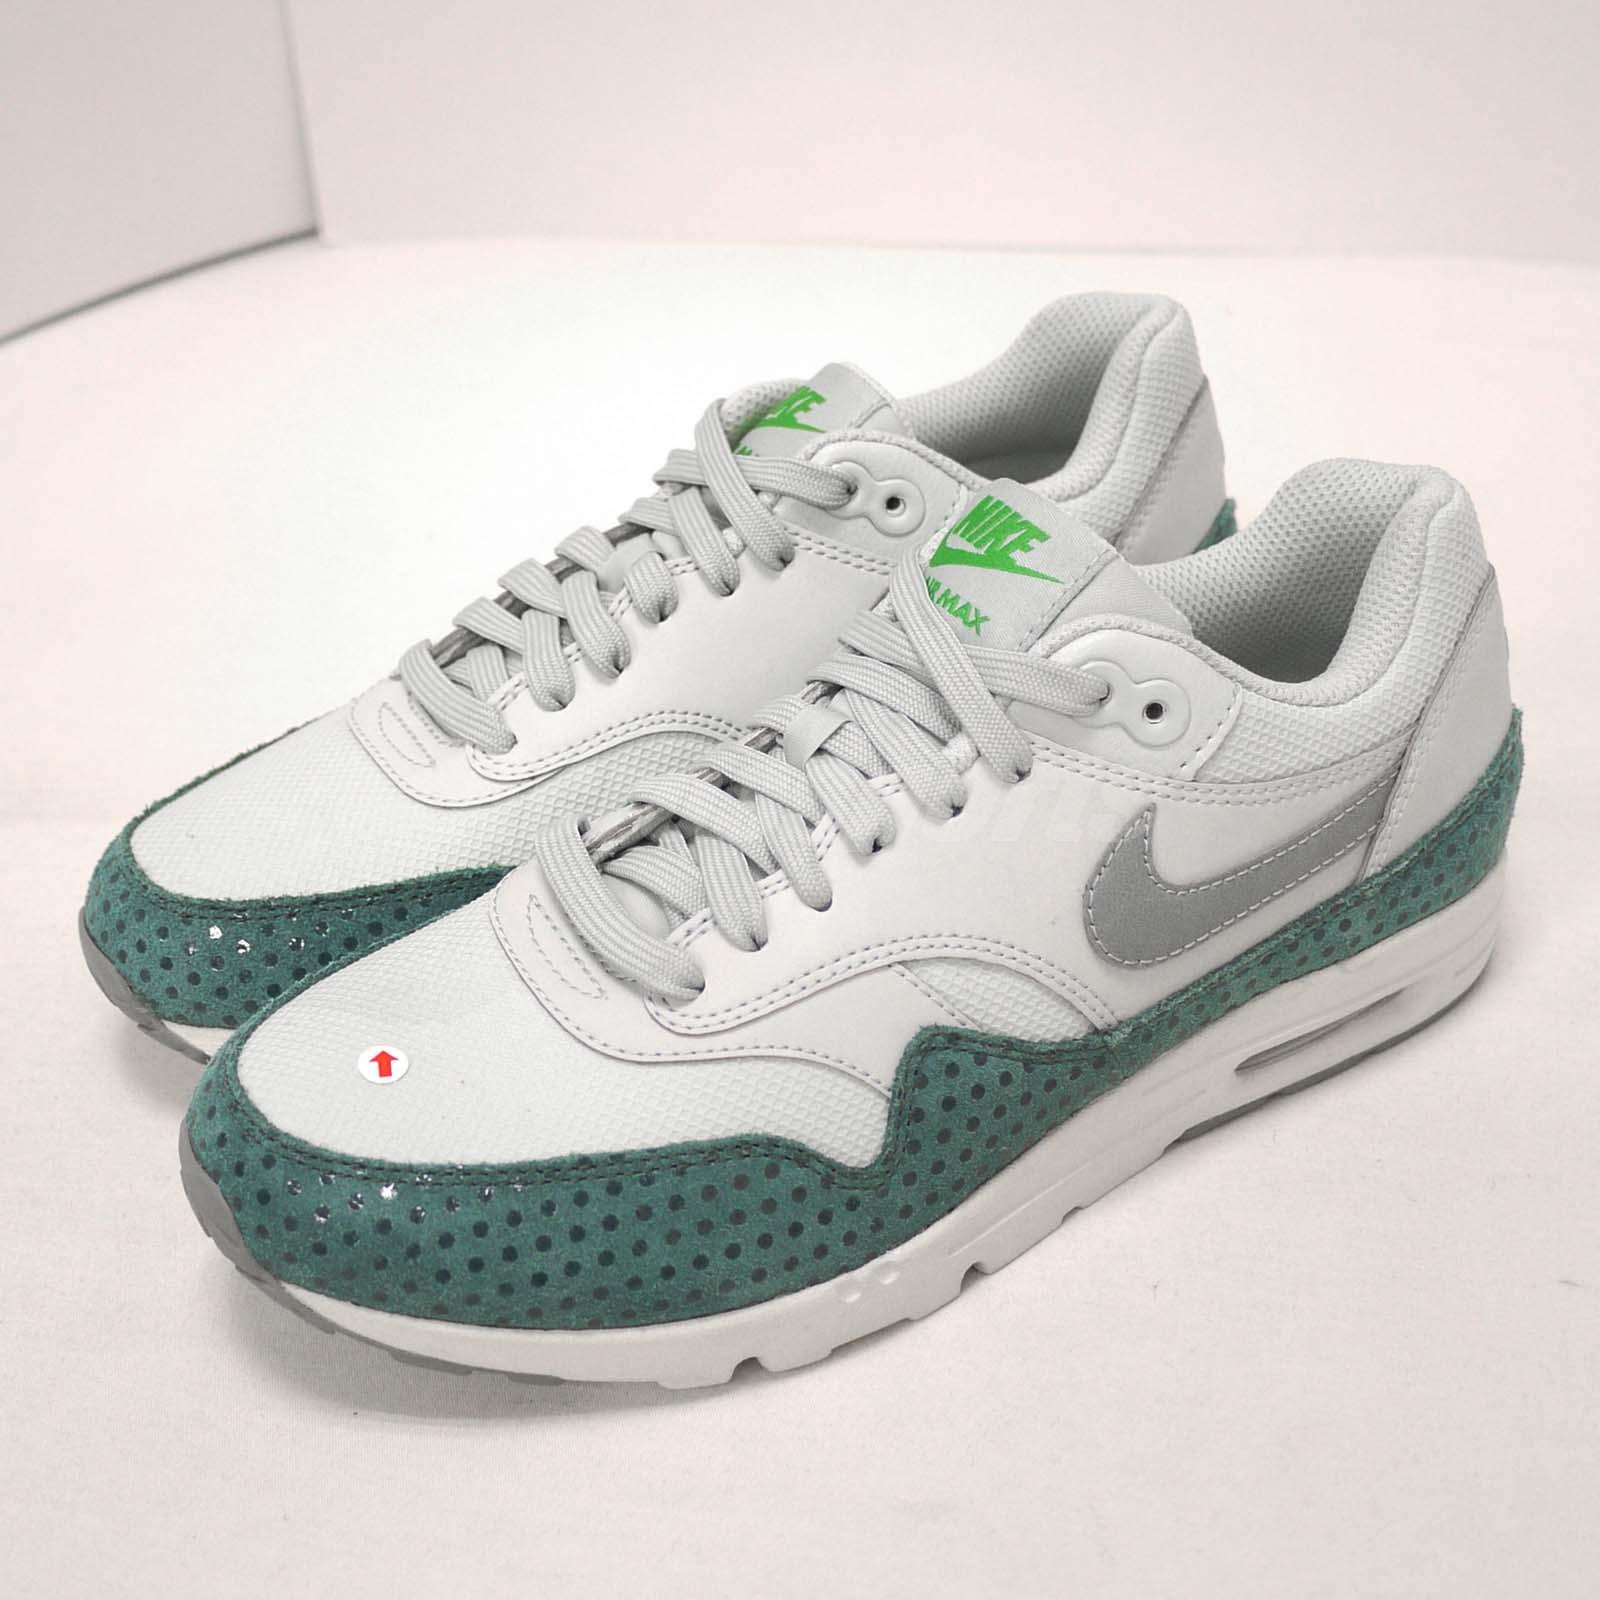 Details about Nike Wmns Air Max 1 Ultra Essentials Left Toe With Stains Women US7.5 704993 006